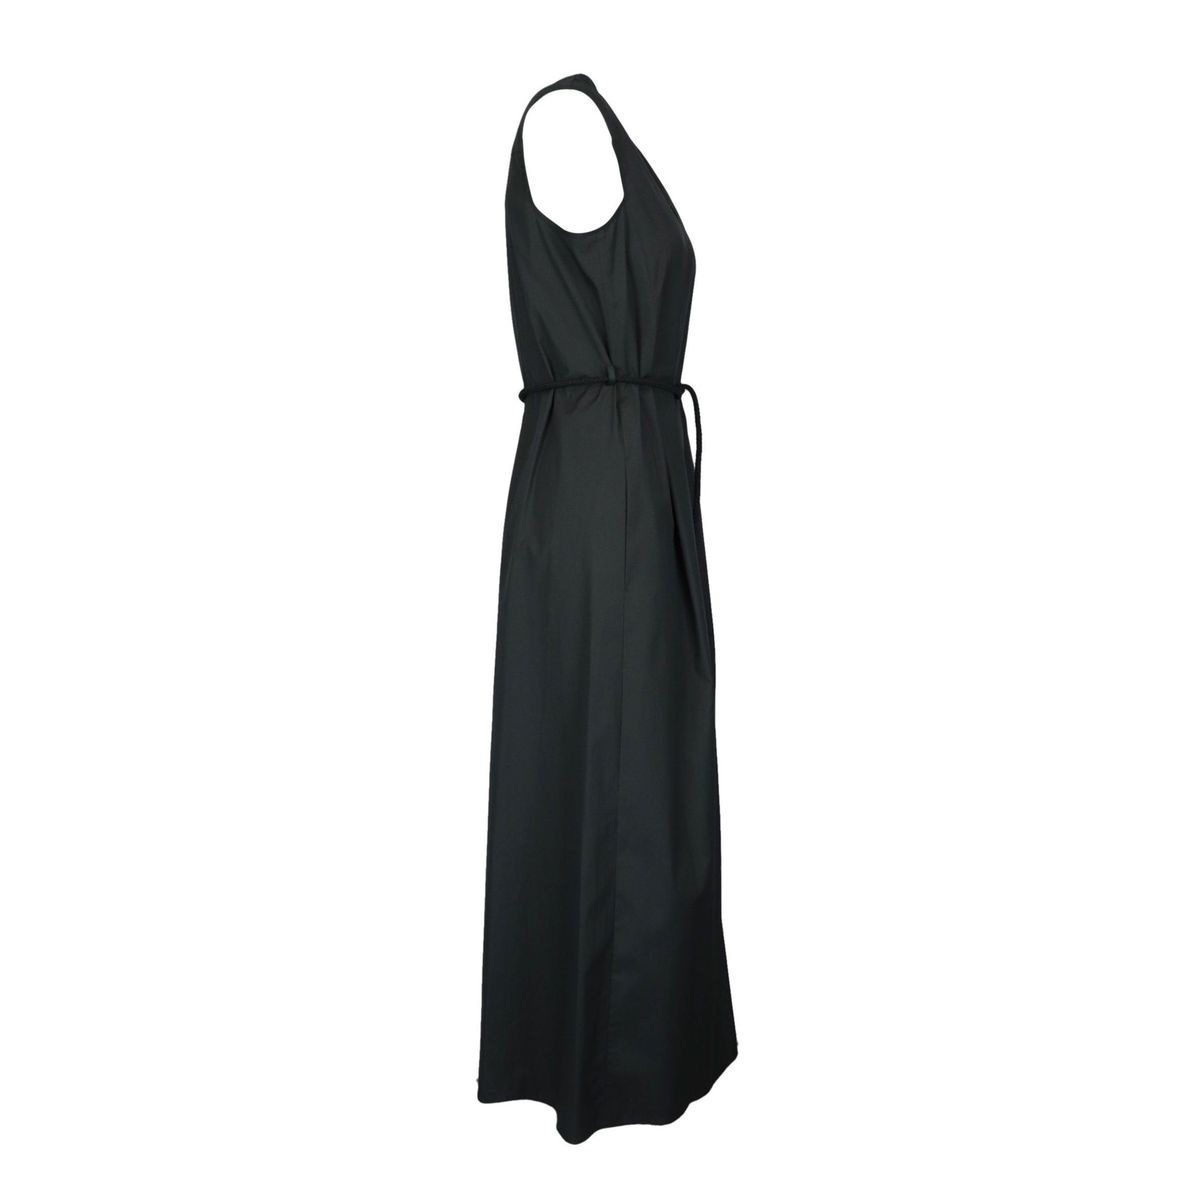 Sleeveless Bruna dress in cotton poplin with cordon waist belt Black MAX MARA STUDIO